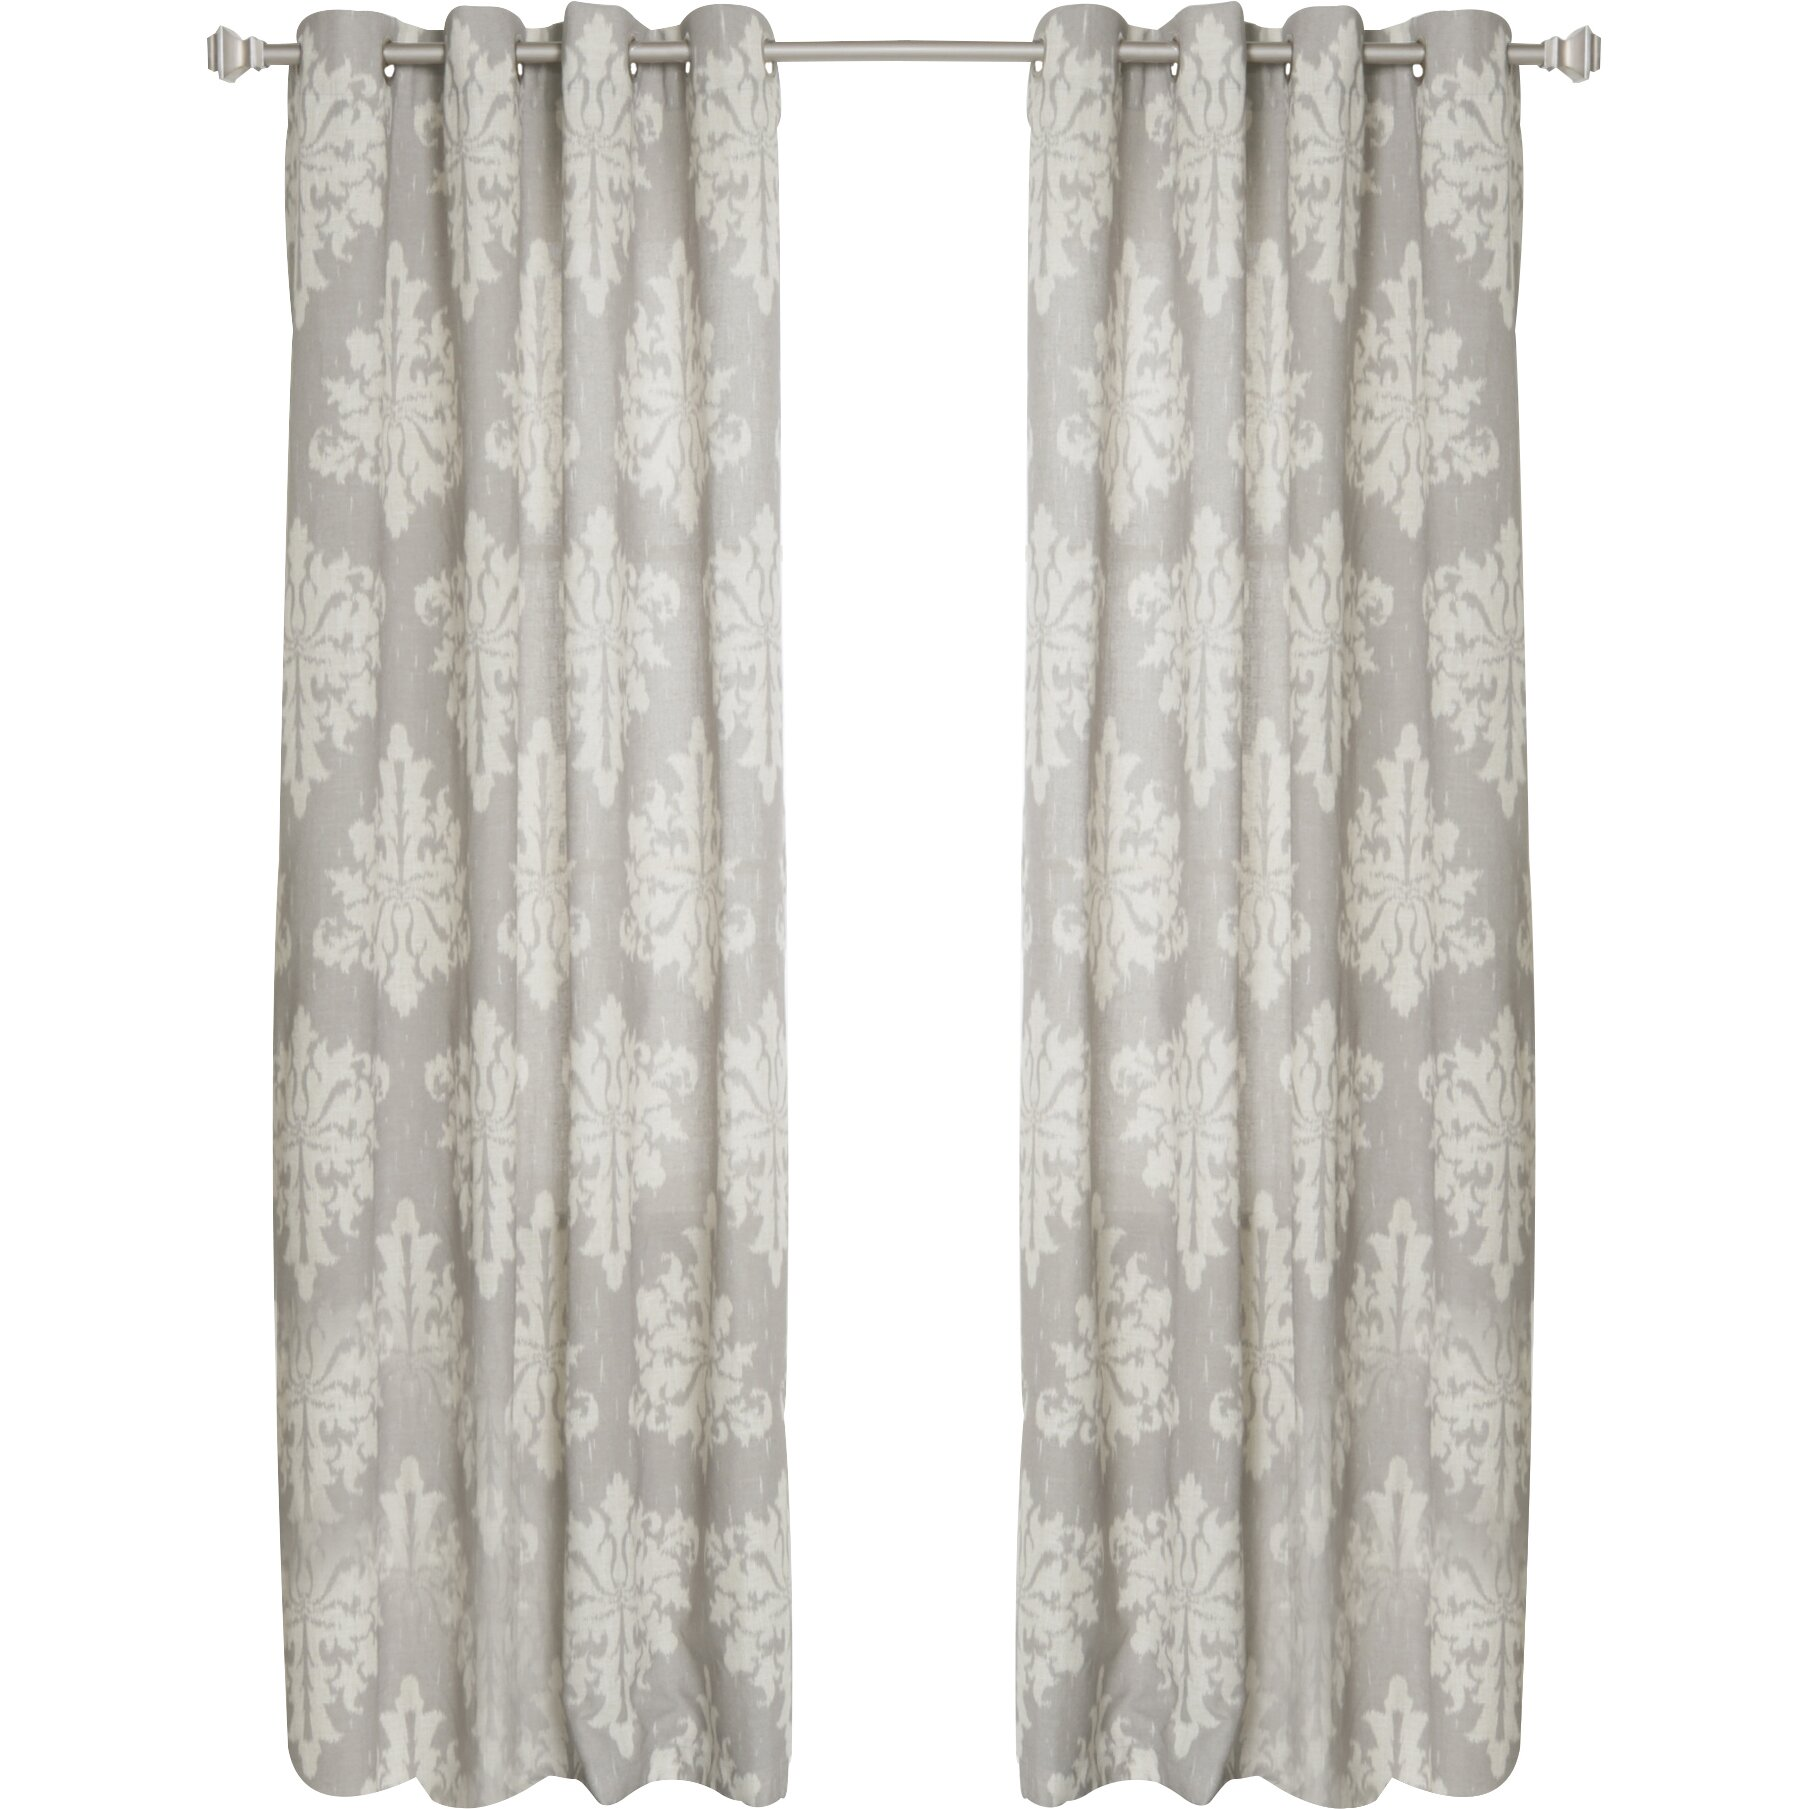 Best Home Fashion, Inc. Linen Blend Grommet Top Curtain Panel ...